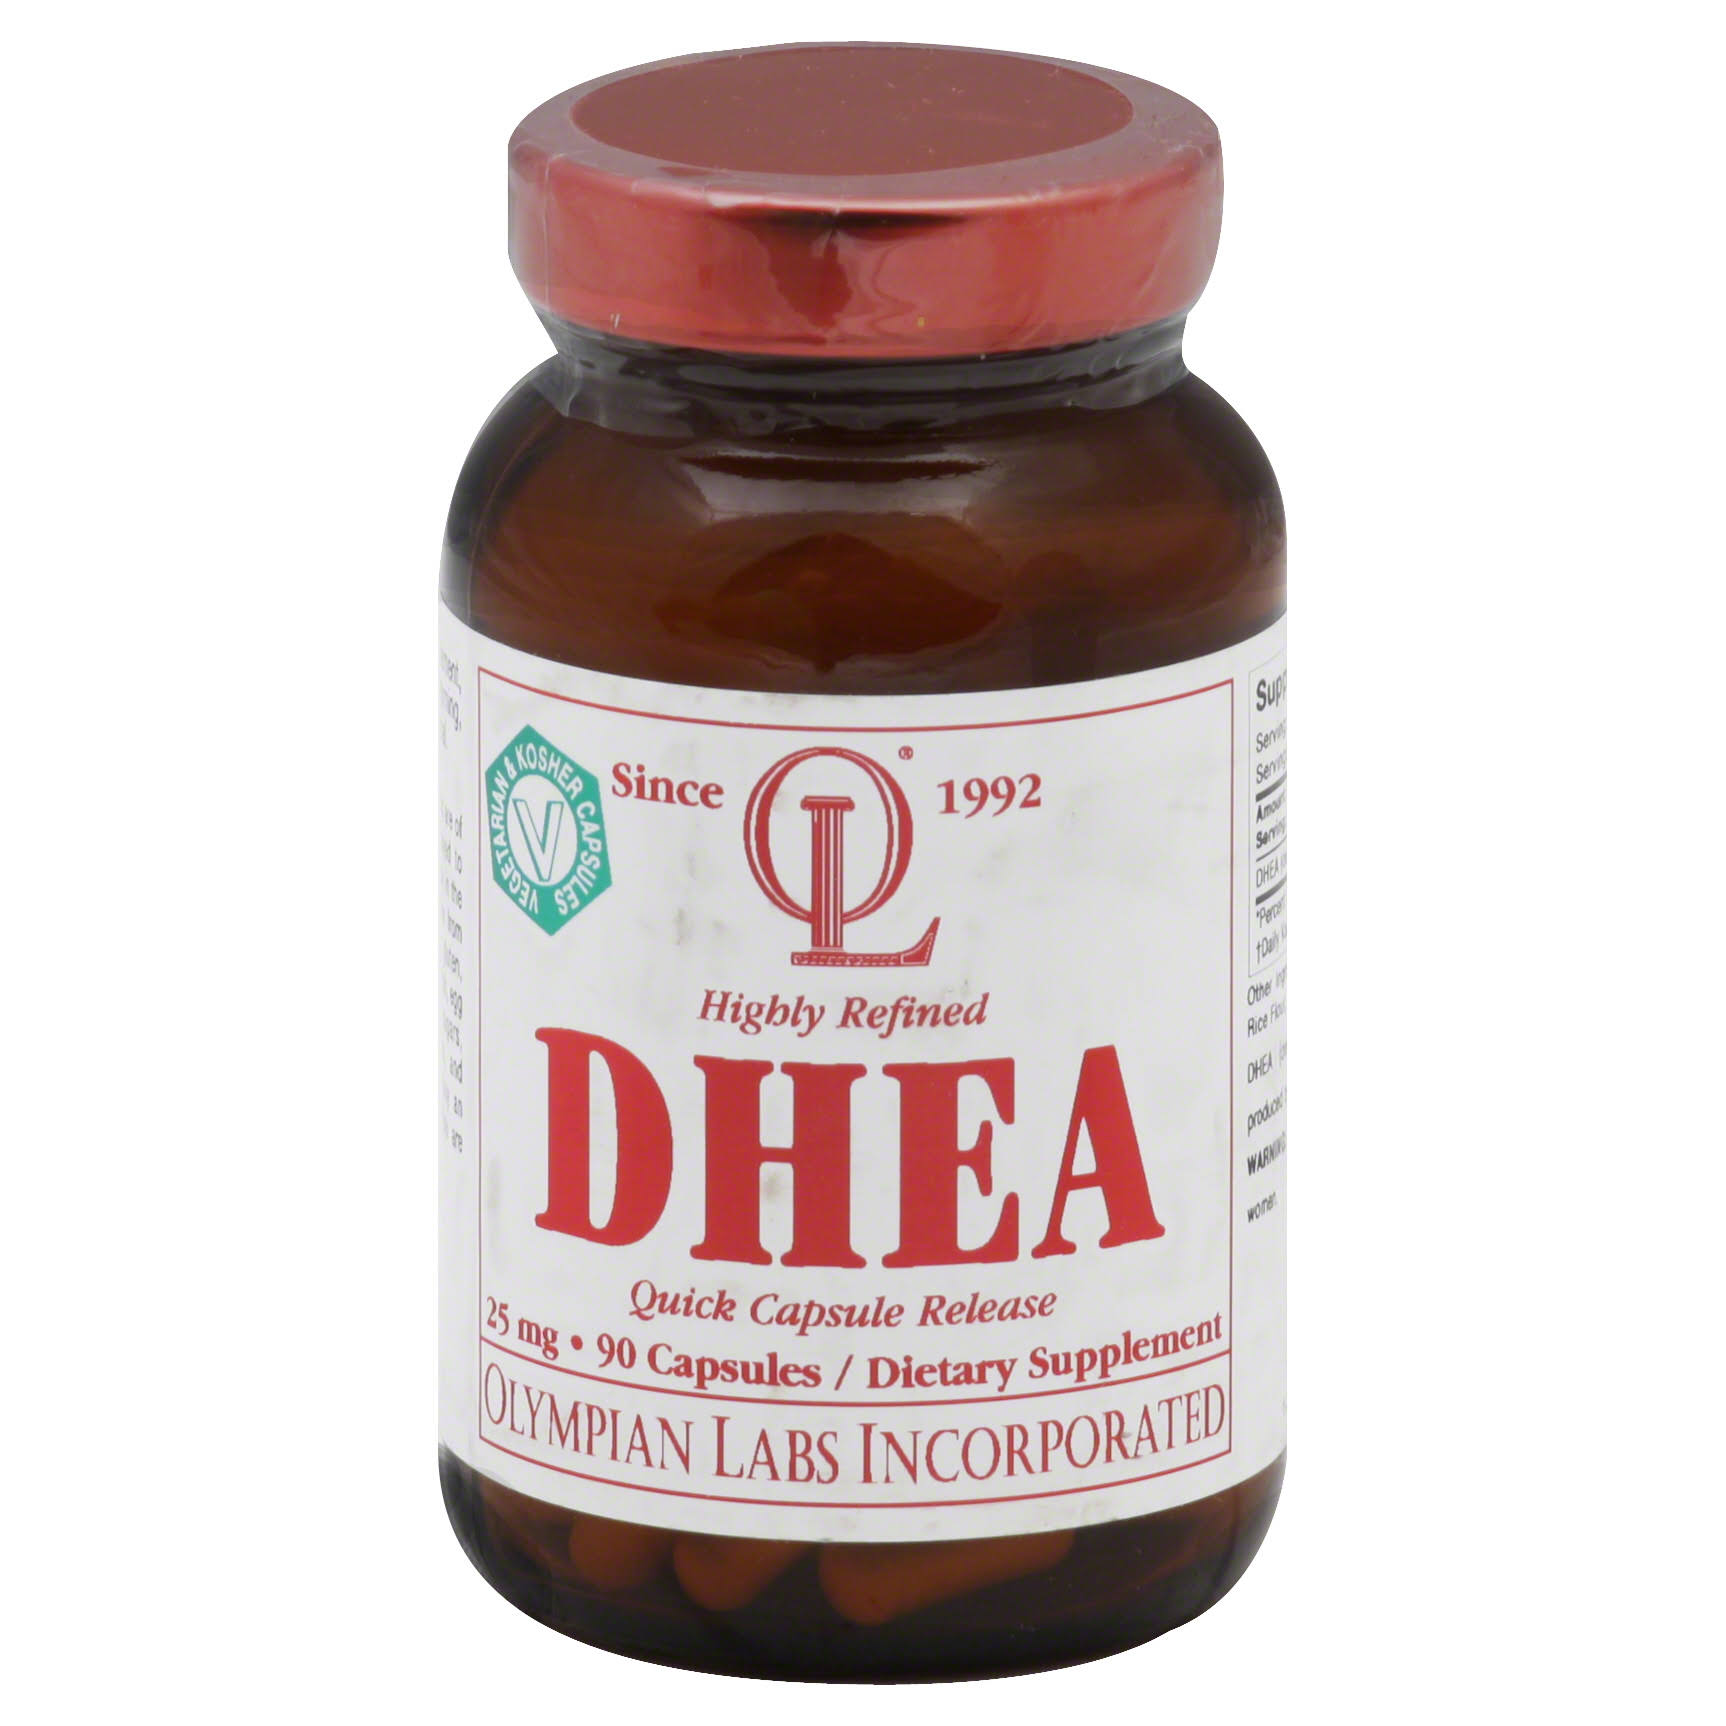 Olympian Labs DHEA Supplement - 25mg, 90Caps